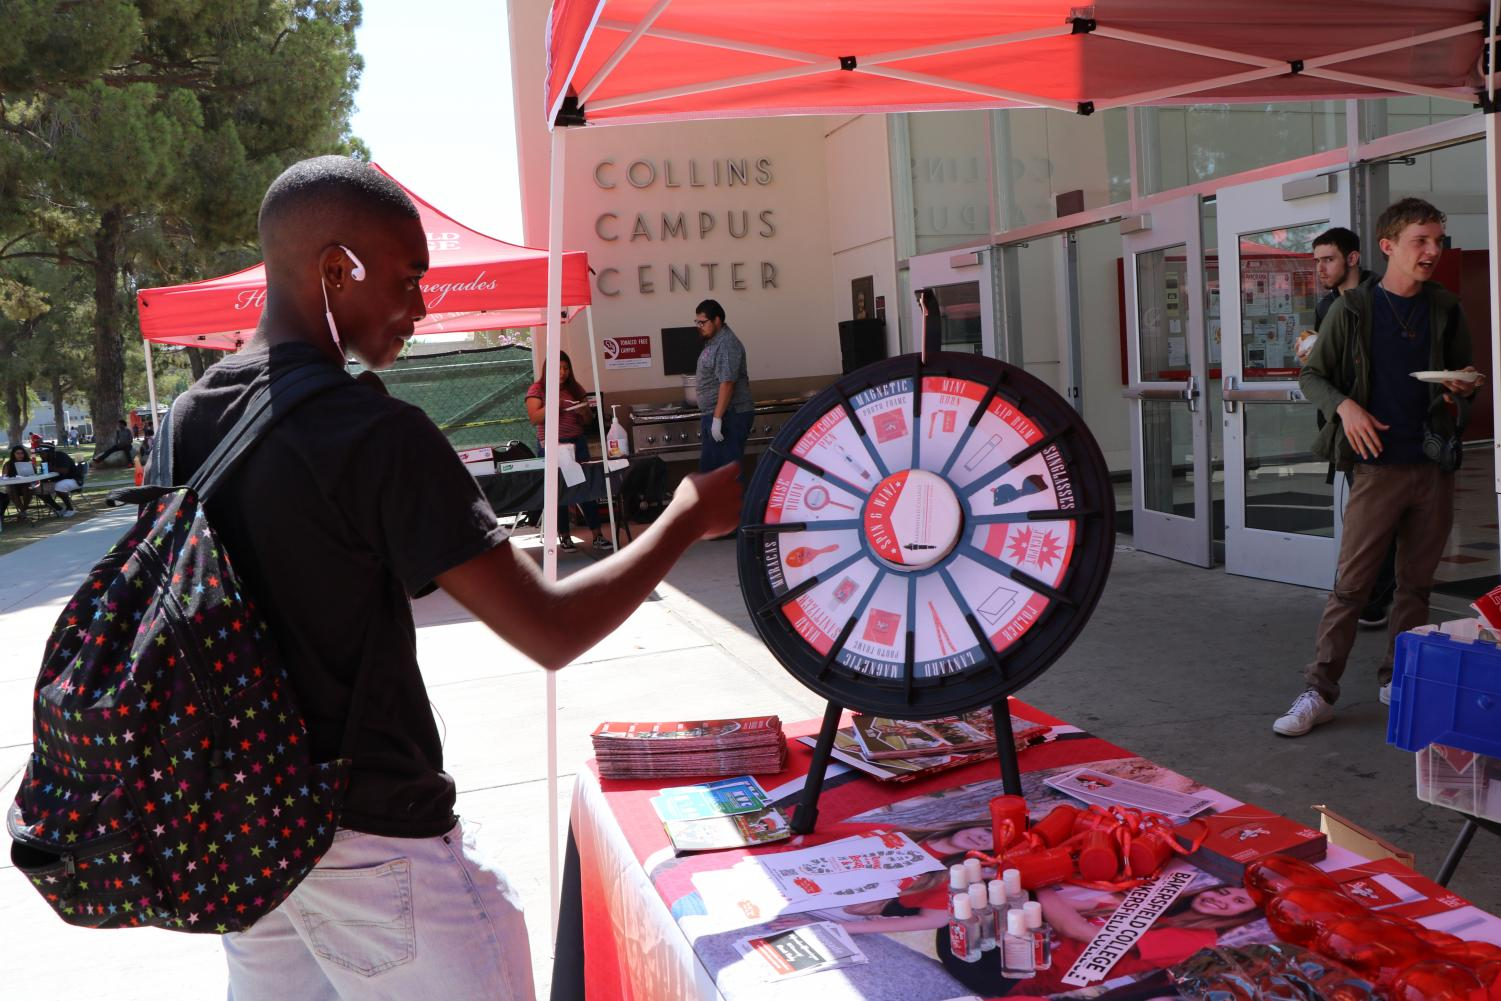 Daryl Maiden spins the wheel to get some free BC swag.